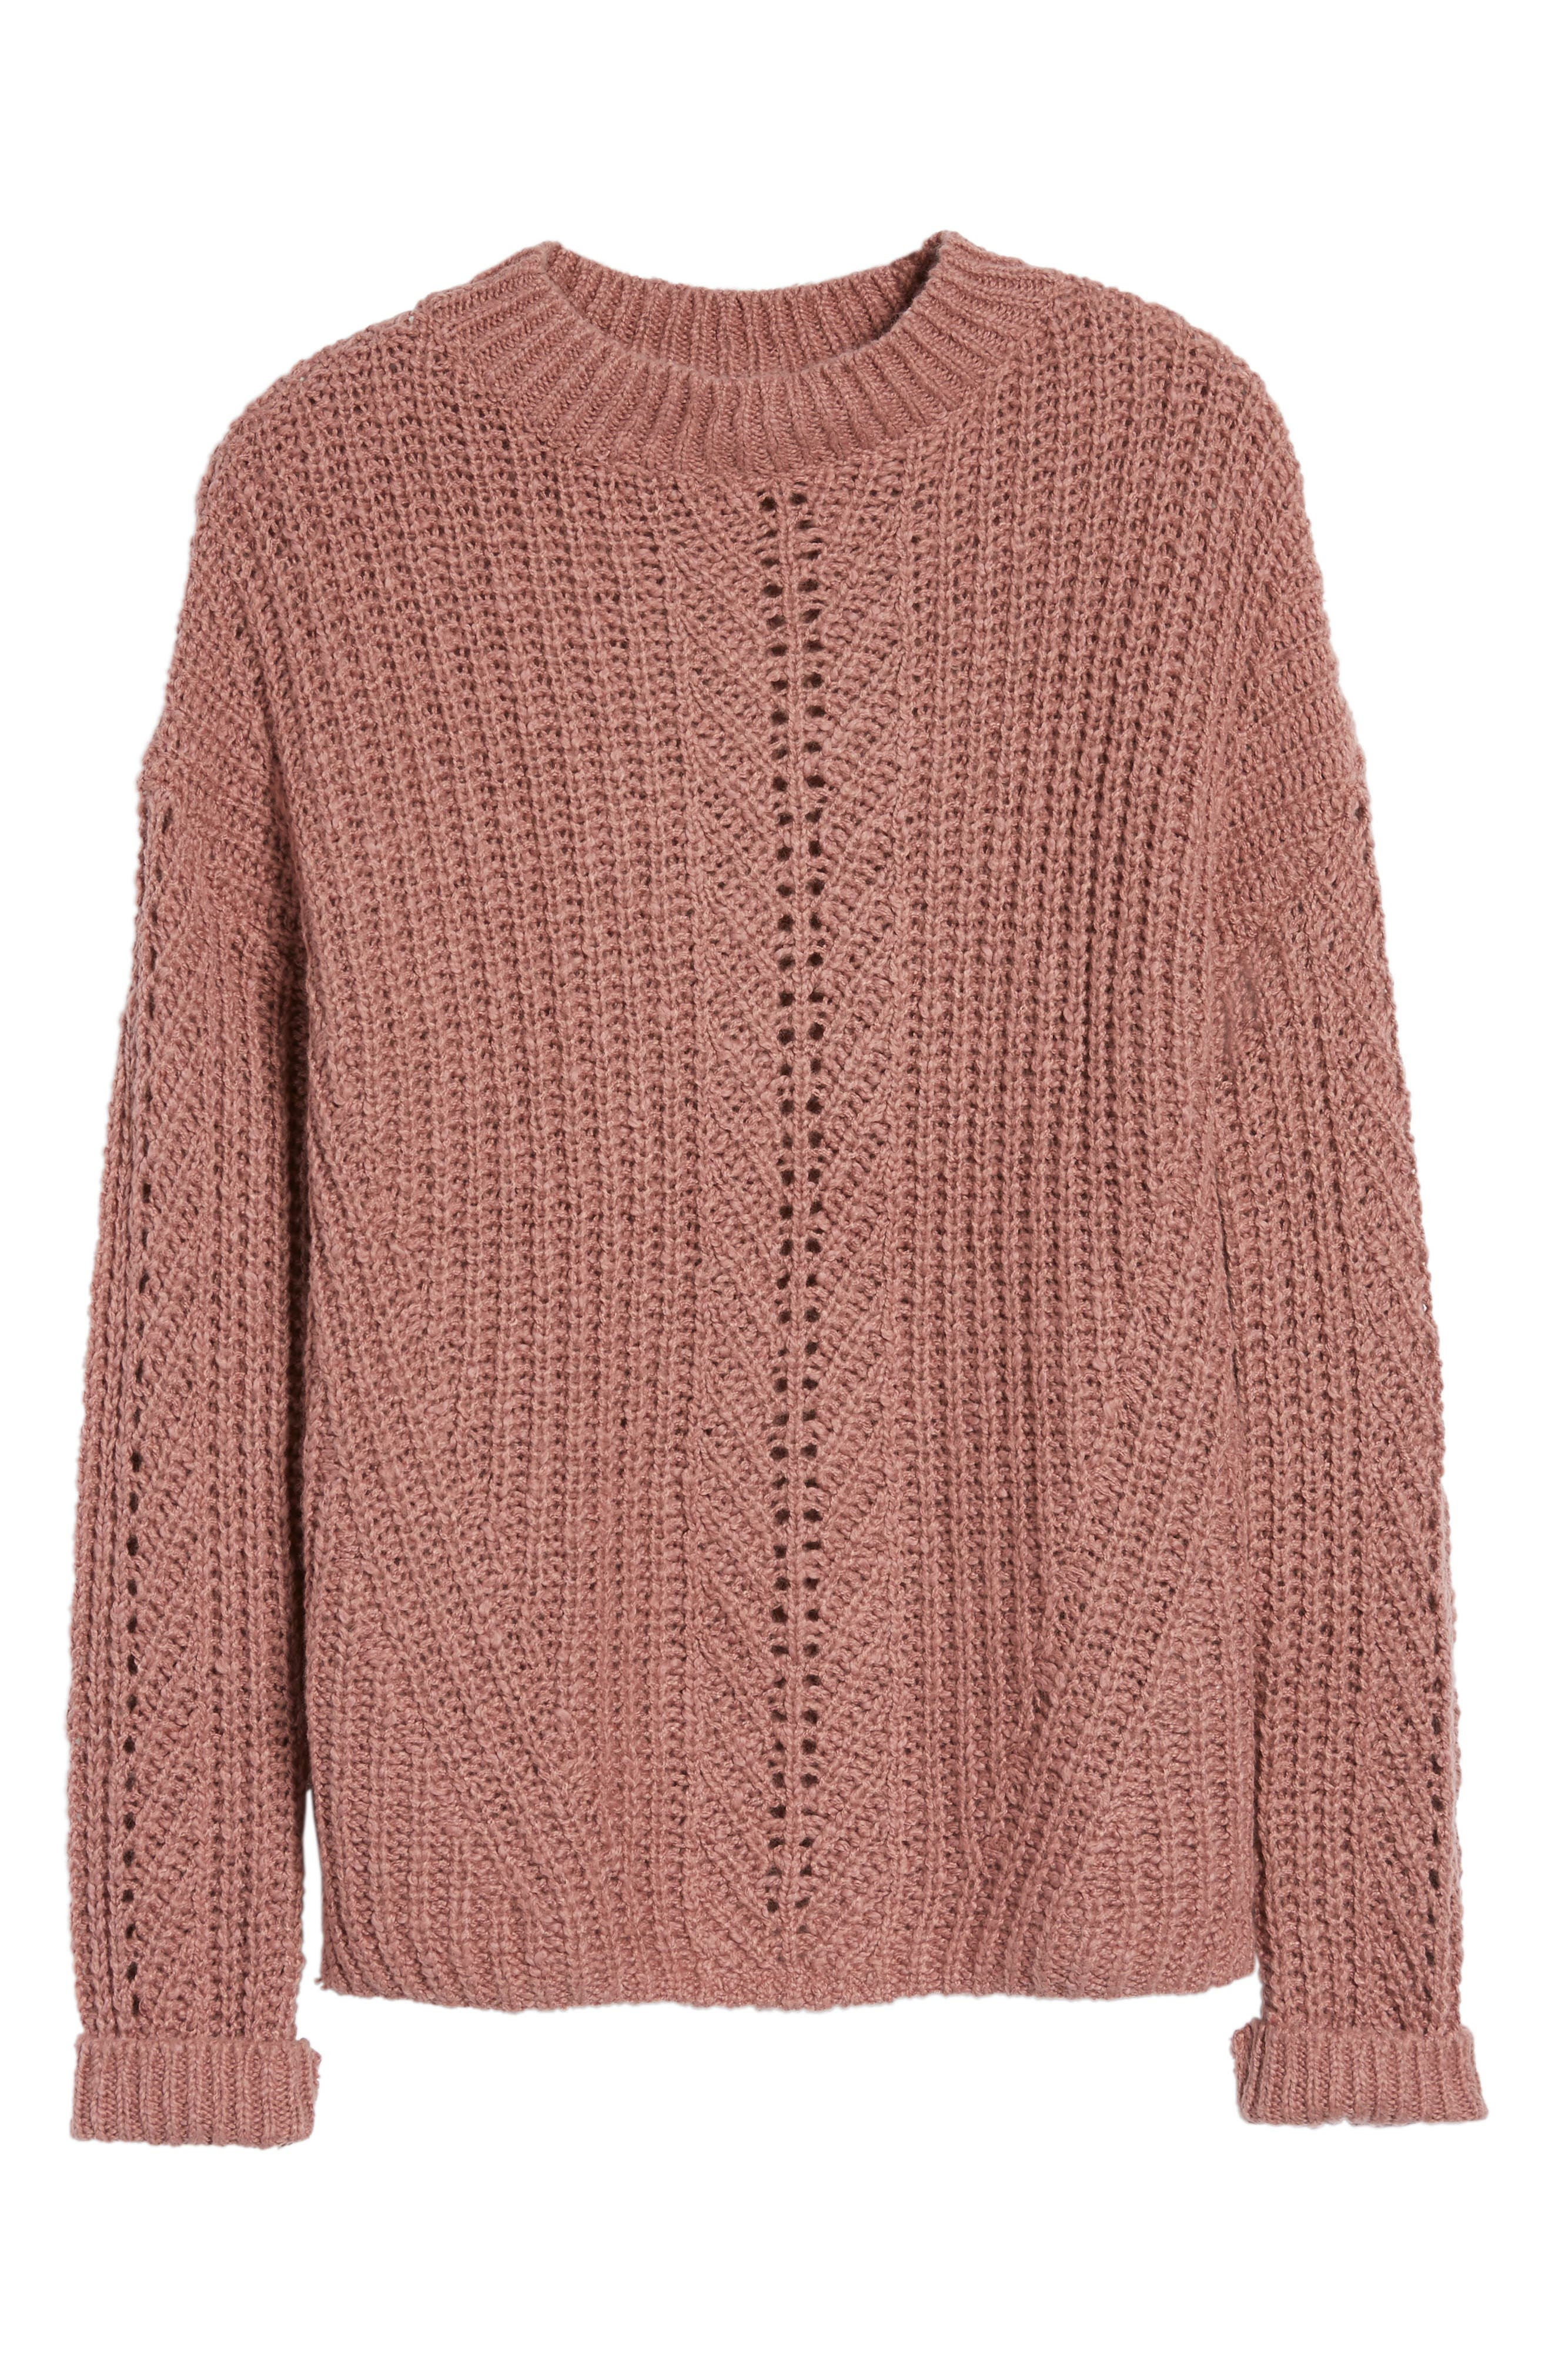 Open Stitch Sweater,                         Main,                         color, Dusty Pink